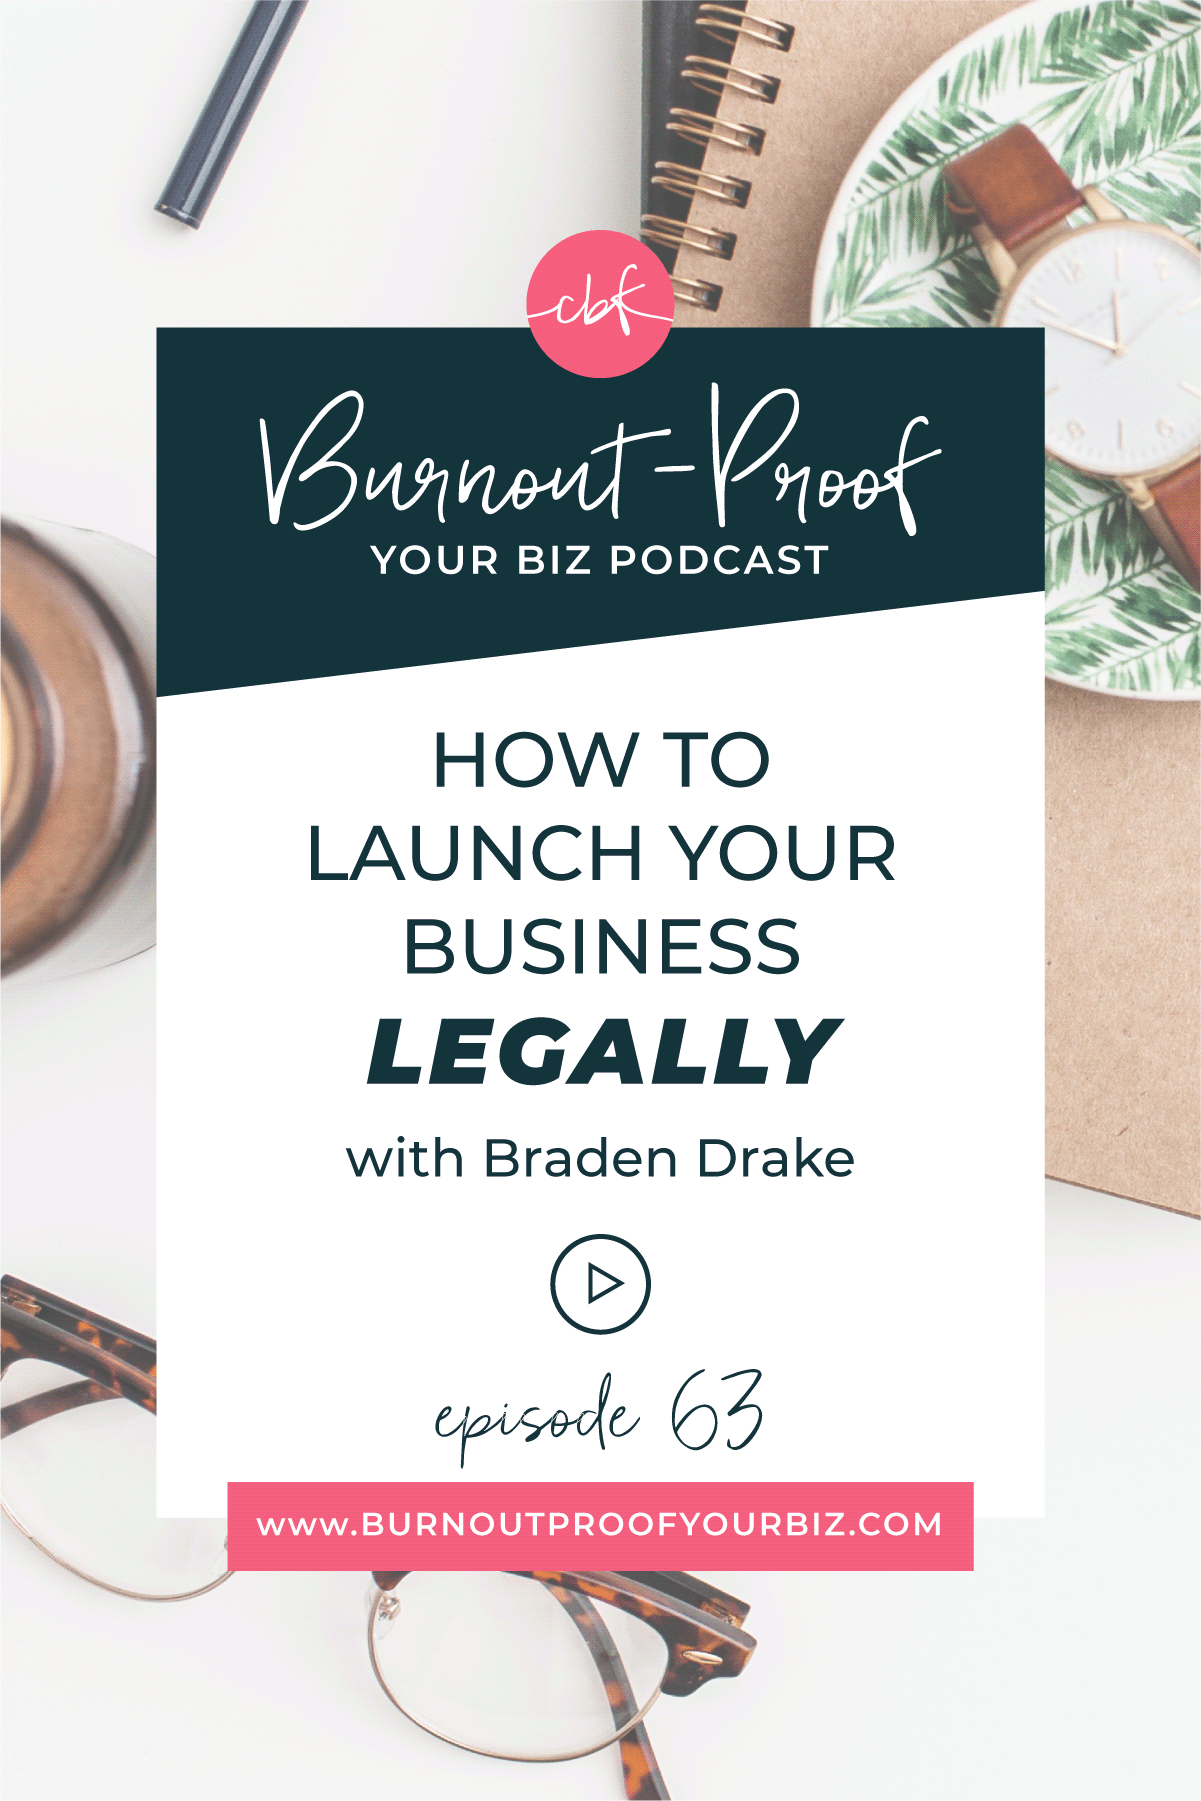 Burnout-Proof Your Biz Podcast with Chelsea B Foster | Episode 063 - Launching Your Business Legally with Braden Drake | Learn how to run your biz and live your dream life on your own terms without the fear of burnout.  |||  BURNOUT-PROOF YOUR BUSINESS PODCAST | WORKFLOW & PRODUCTIVITY SPECIALIST | LEGAL FUNDAMENTALS FOR ENTREPRENEURS | BRADEN DRAKE LAW | STARTING A BUSINESS LEGALLY | HOW TO START A BUSINESS THE LEGAL WAY